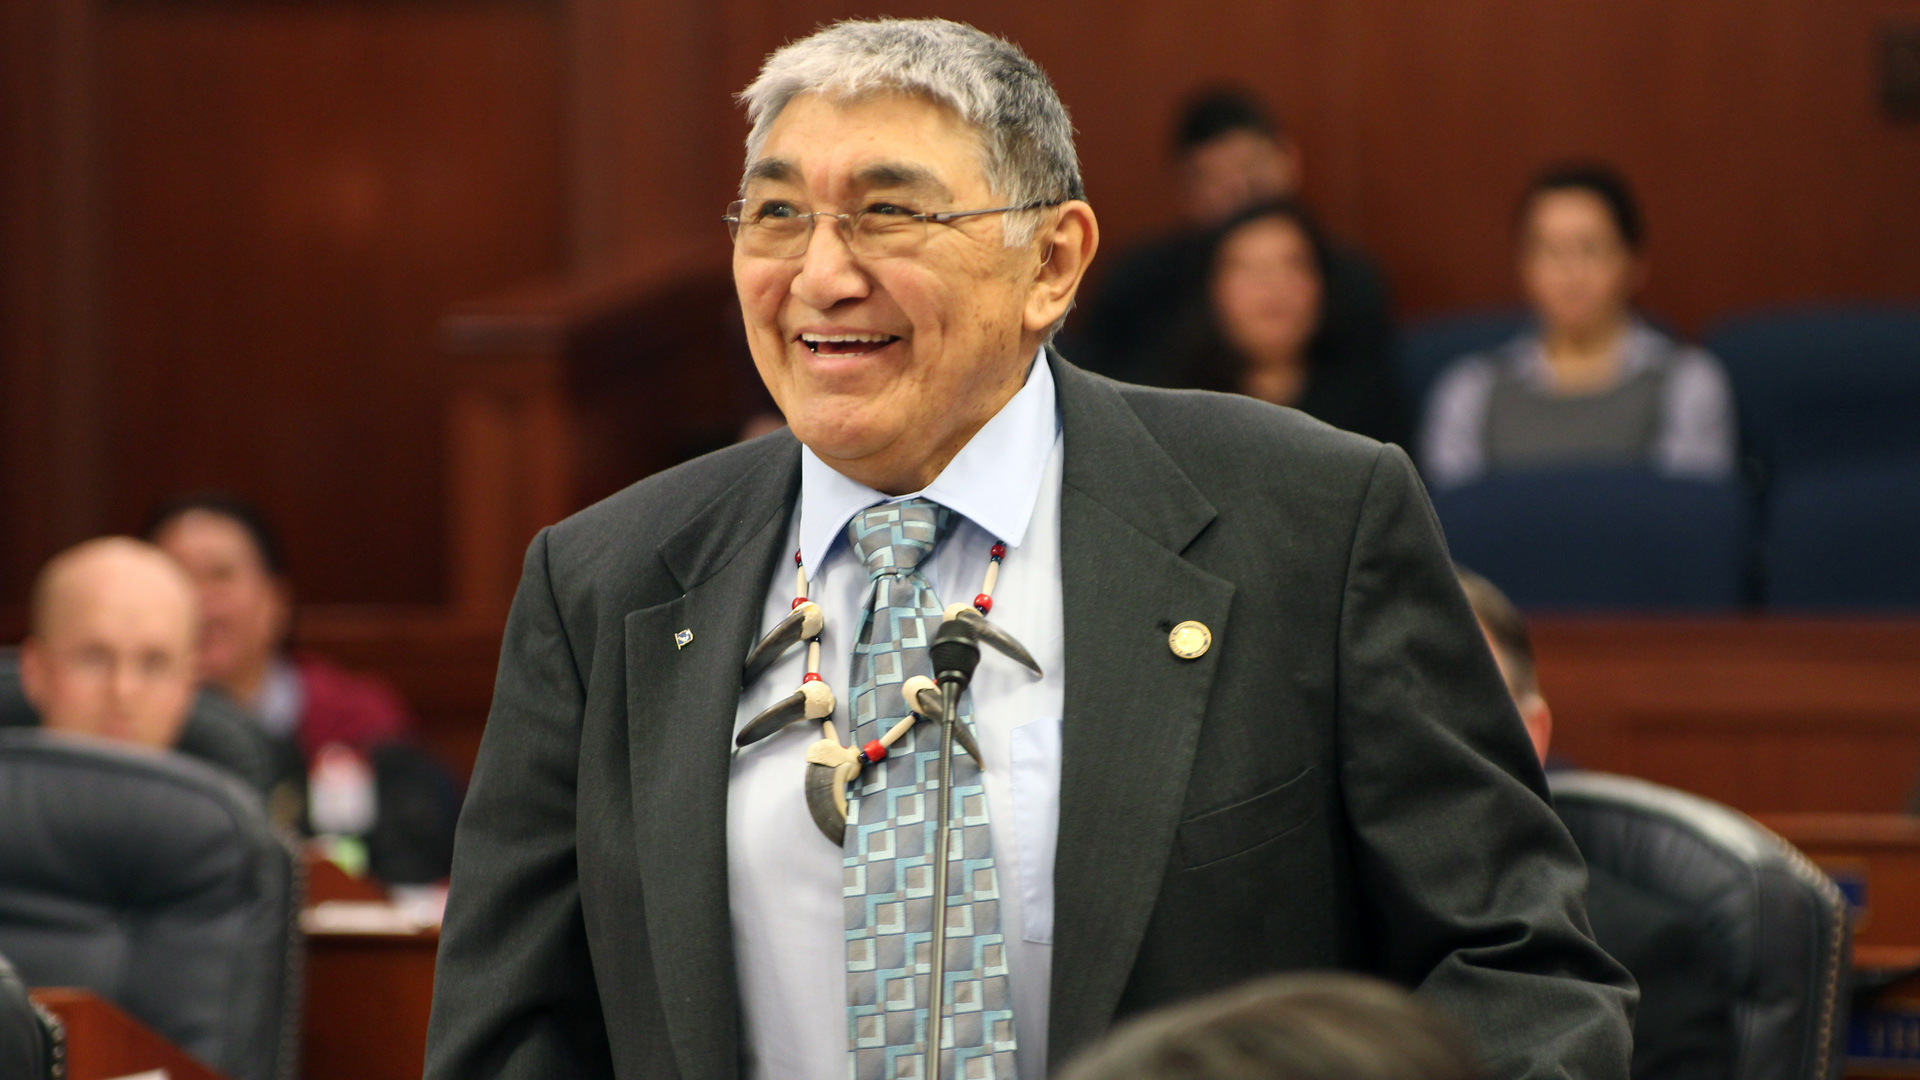 Alaska Native lawmaker in hospital after emergency at capitol